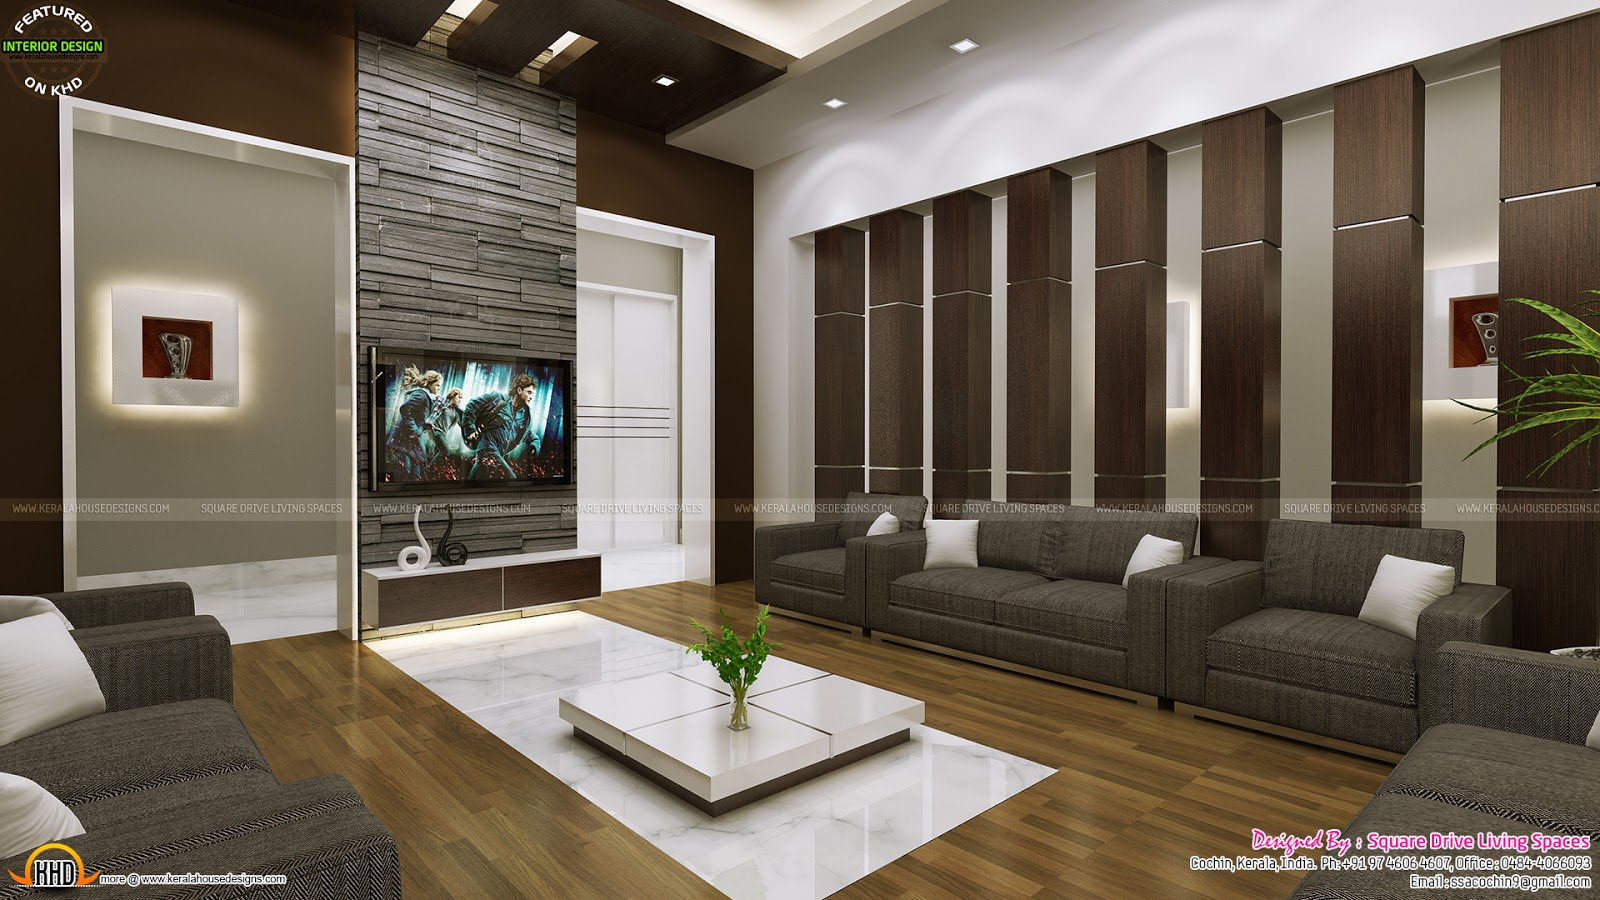 Attractive home interior ideas kerala home design and - Interior design tips living room ...